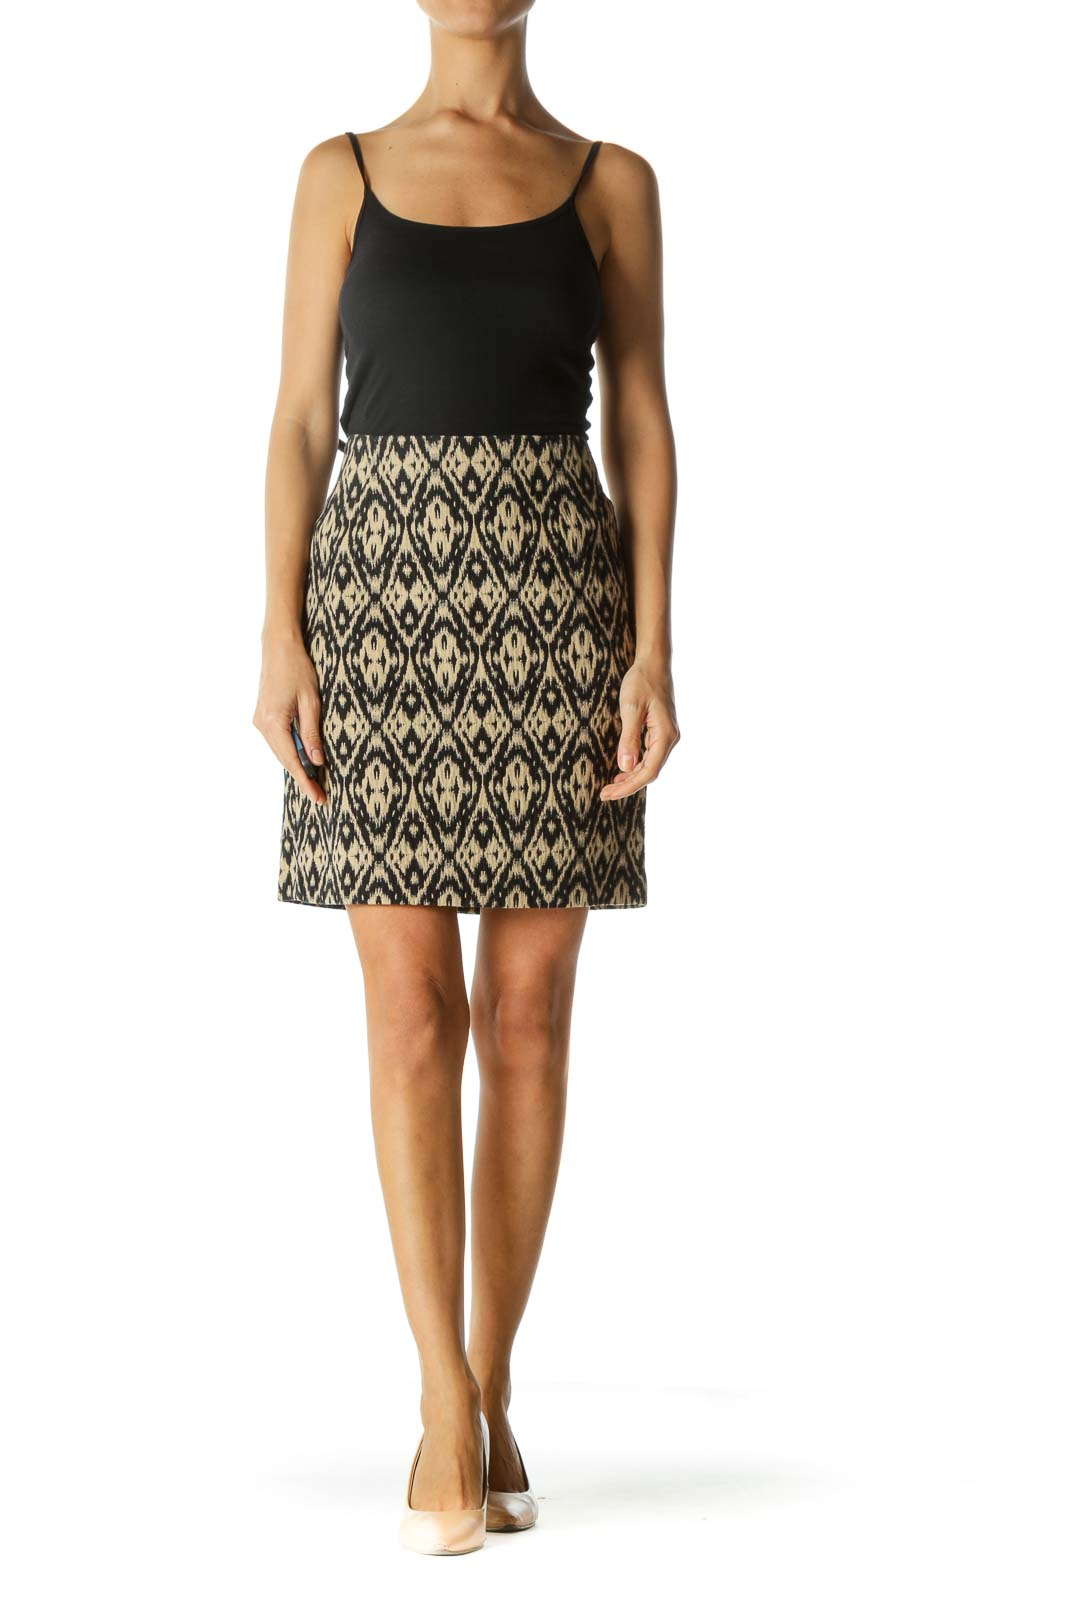 Beige and Black Patterned Pencil Skirt